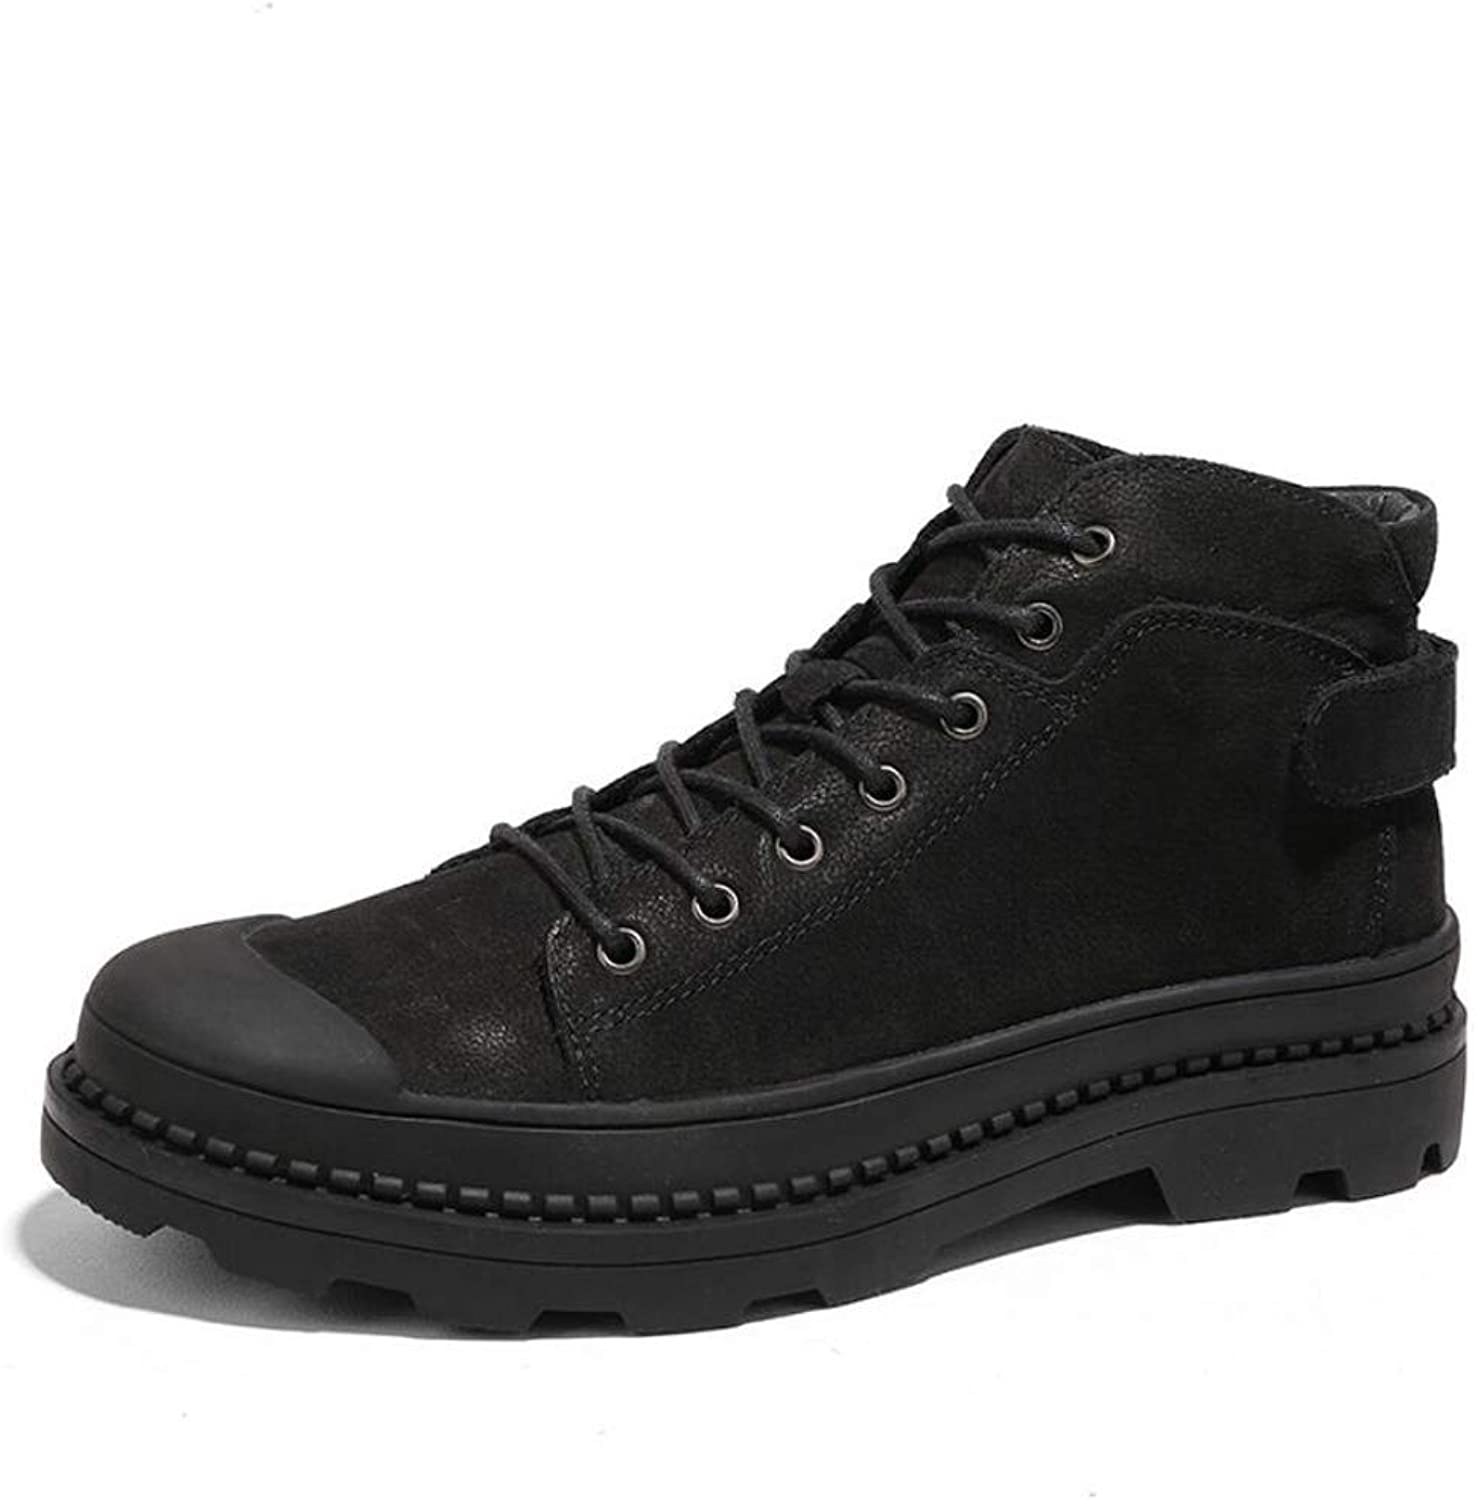 Men's Leather Boots Plus Velvet High to Help Large Size Boots Men's Leather Men's Boots Autumn and Winter British Wind Martin Boots